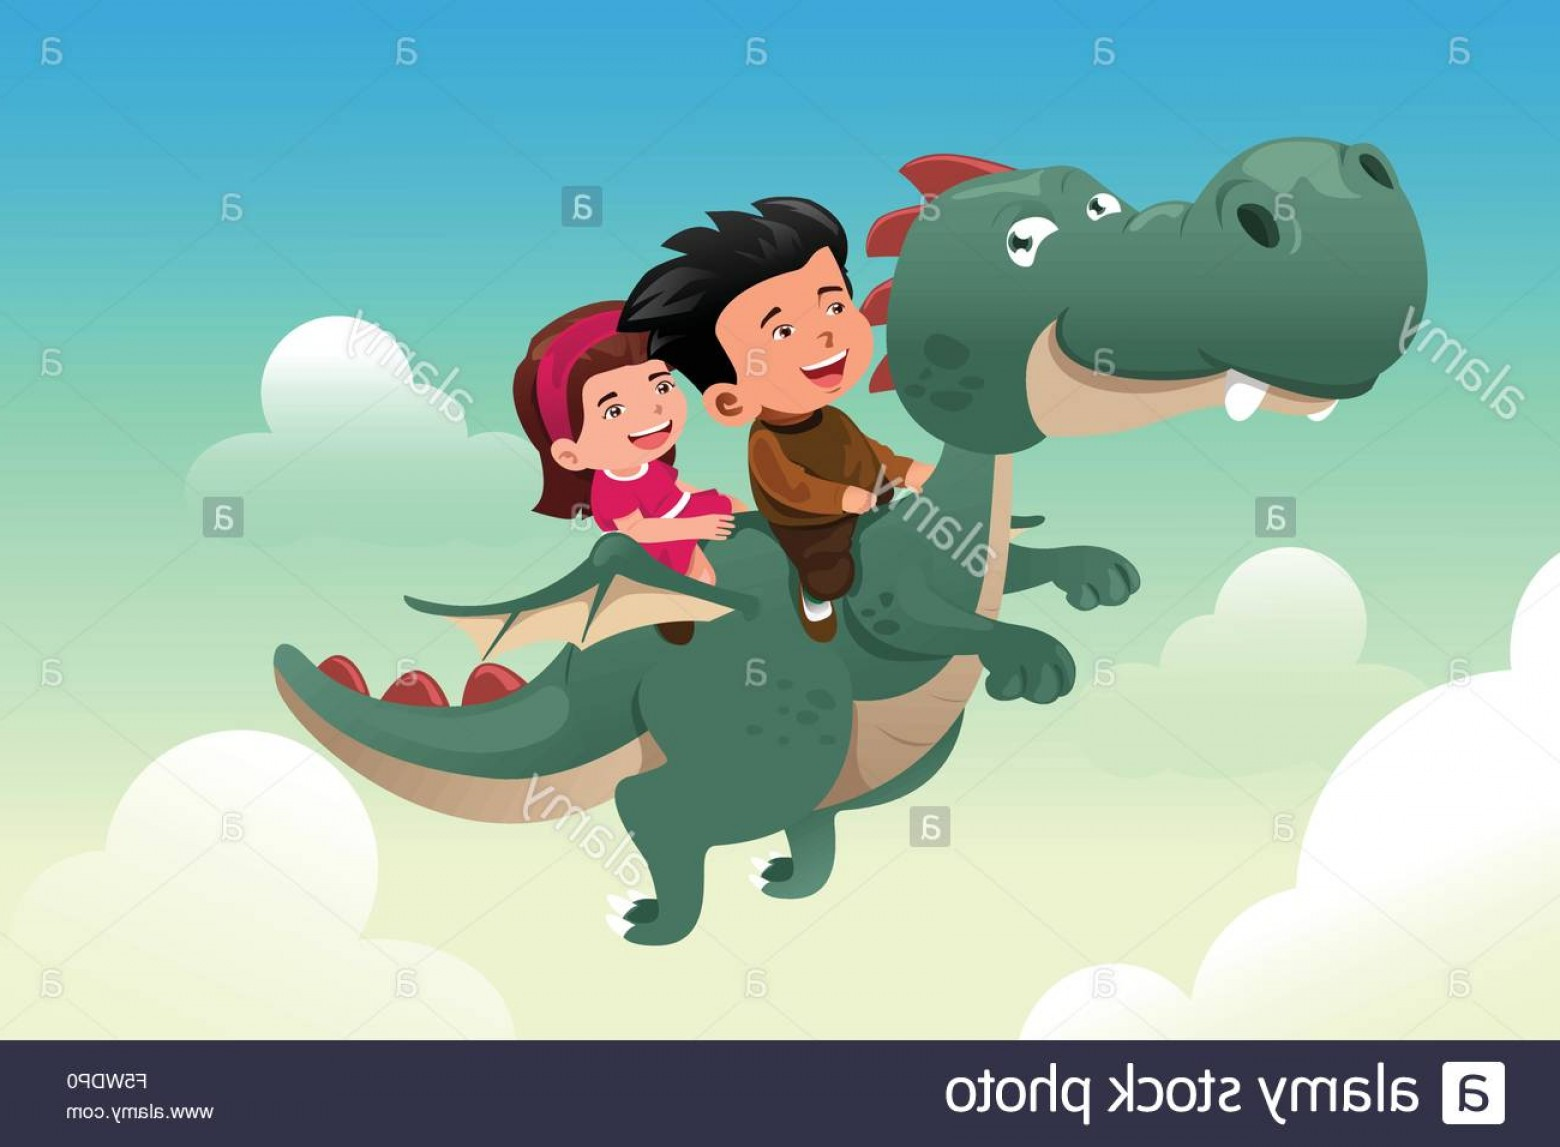 Riding A Dragon Art Vector Clip Art: Stock Photo A Vector Illustration Of Happy Kids Riding On A Cute Dragon